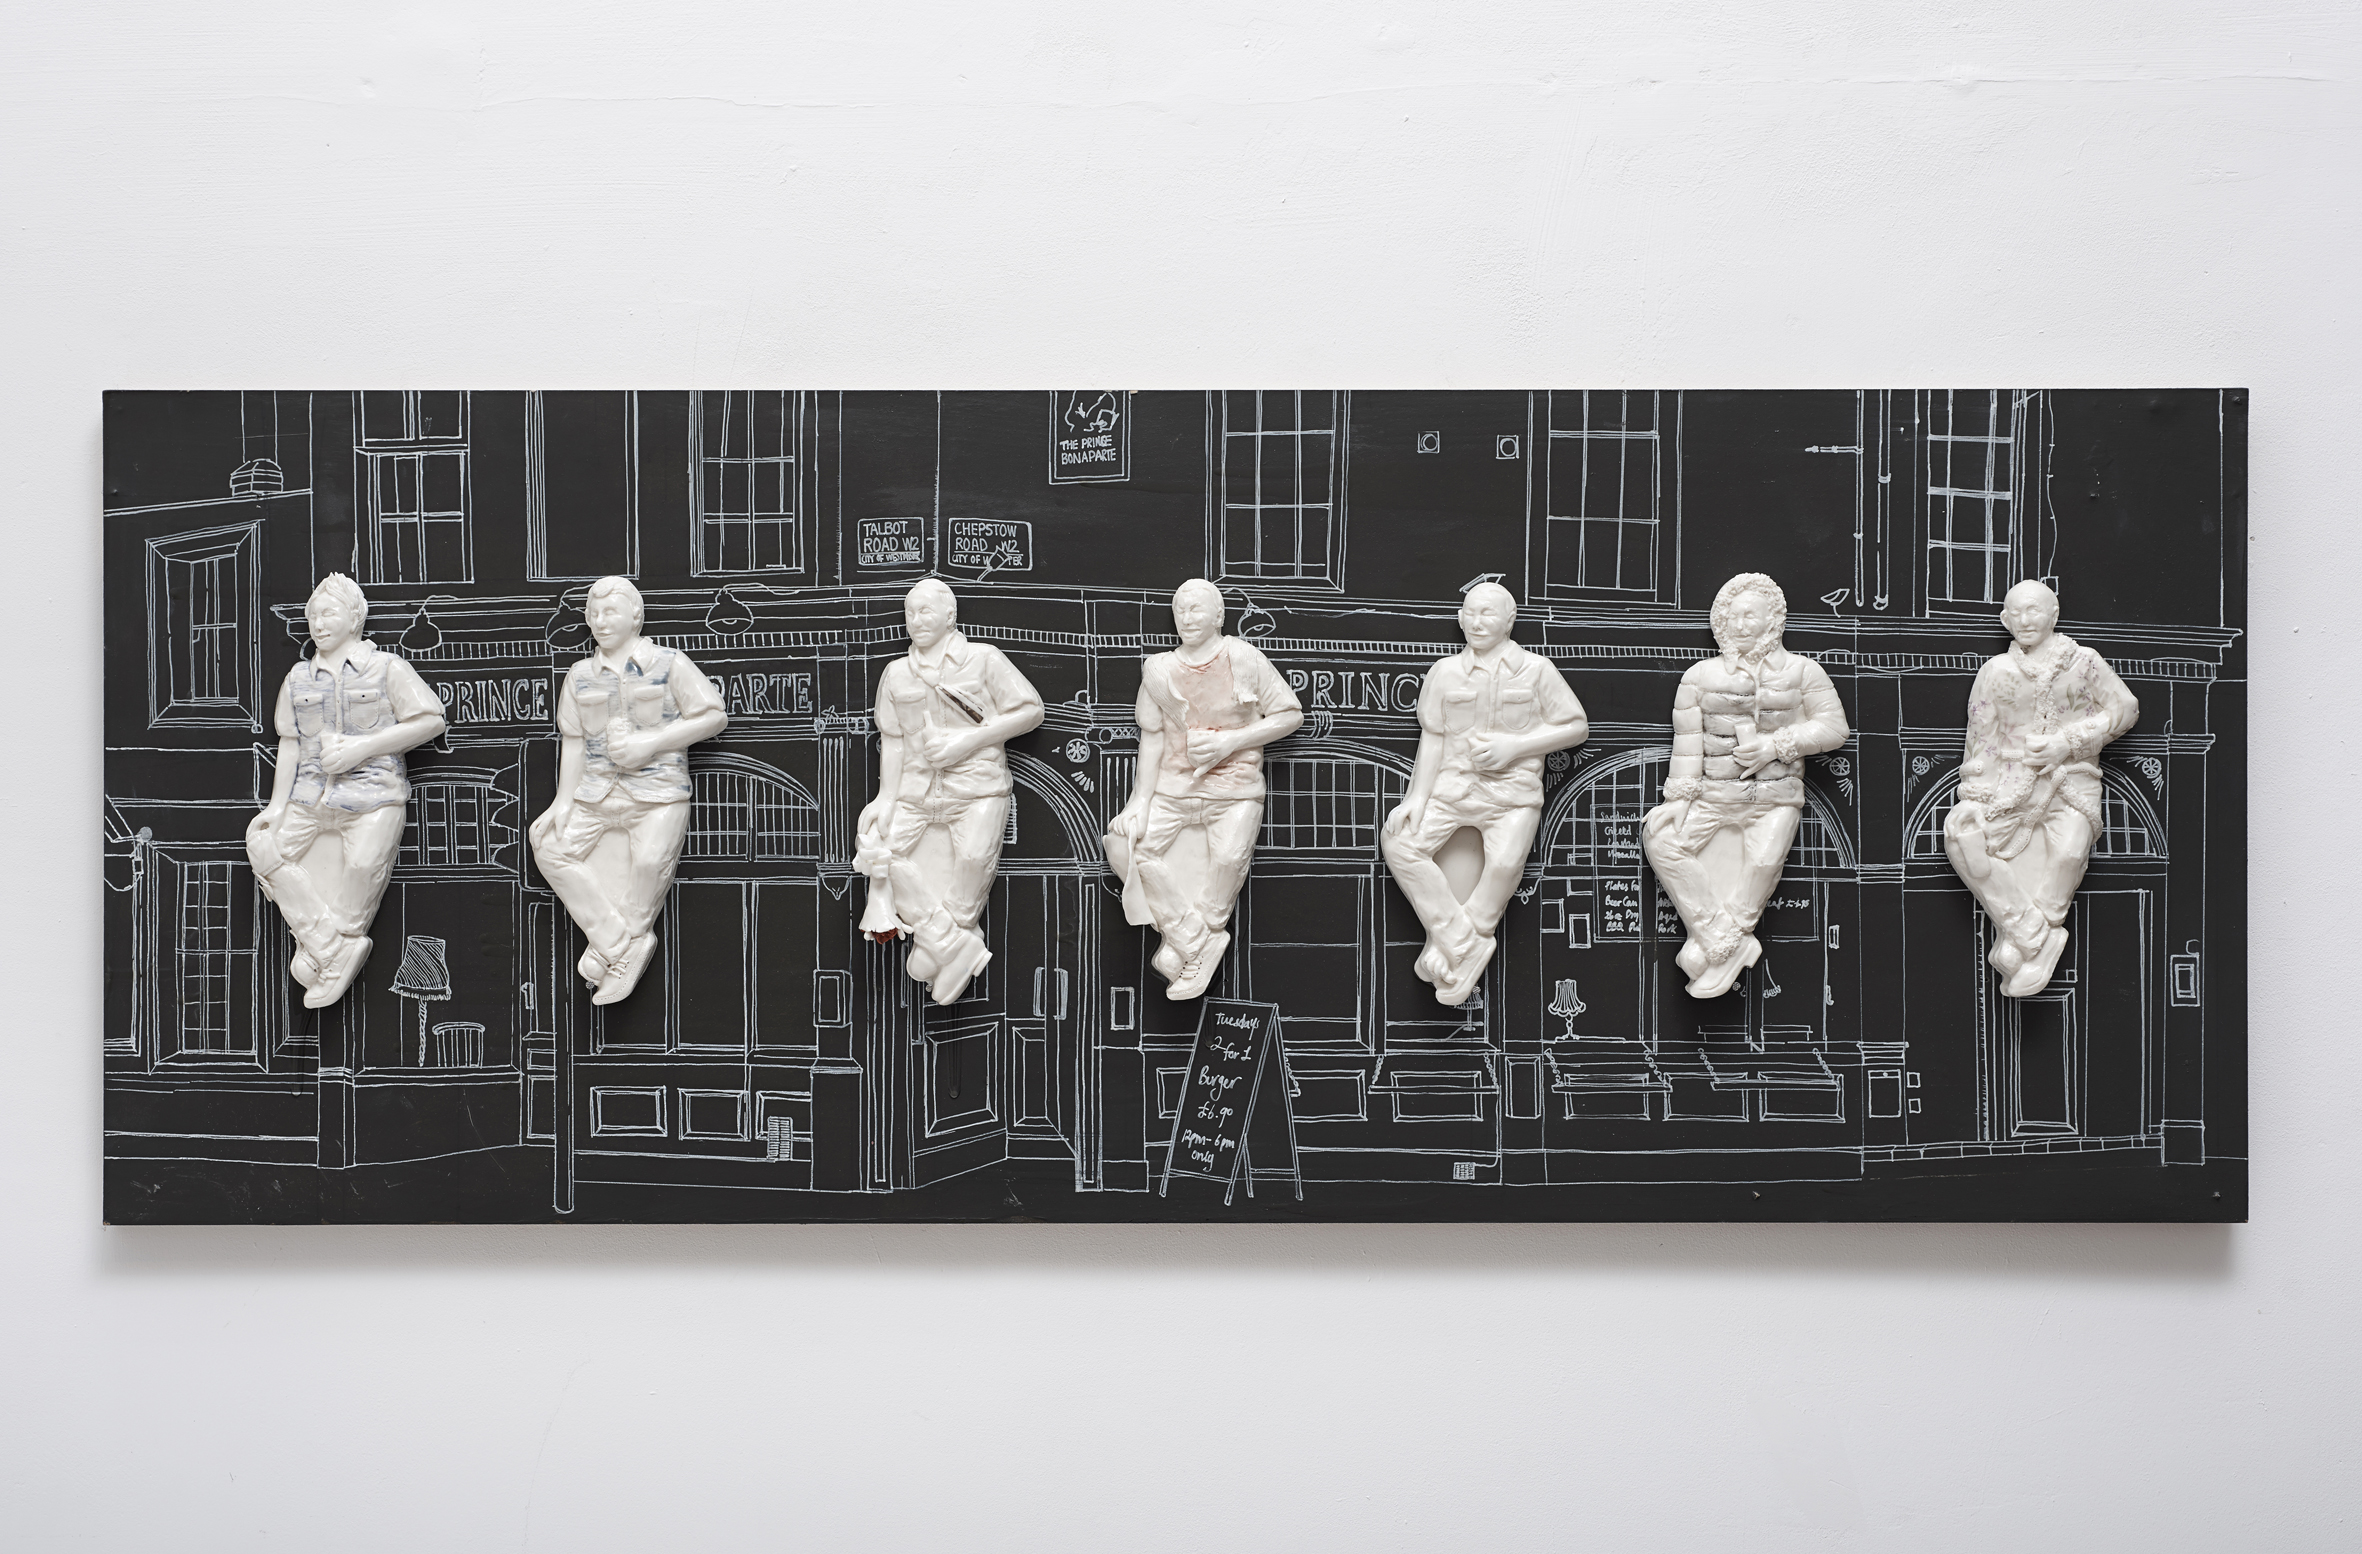 SunAeKIM_From the Cradle to Grave_Porcelain_Mixed Media_2014.jpg